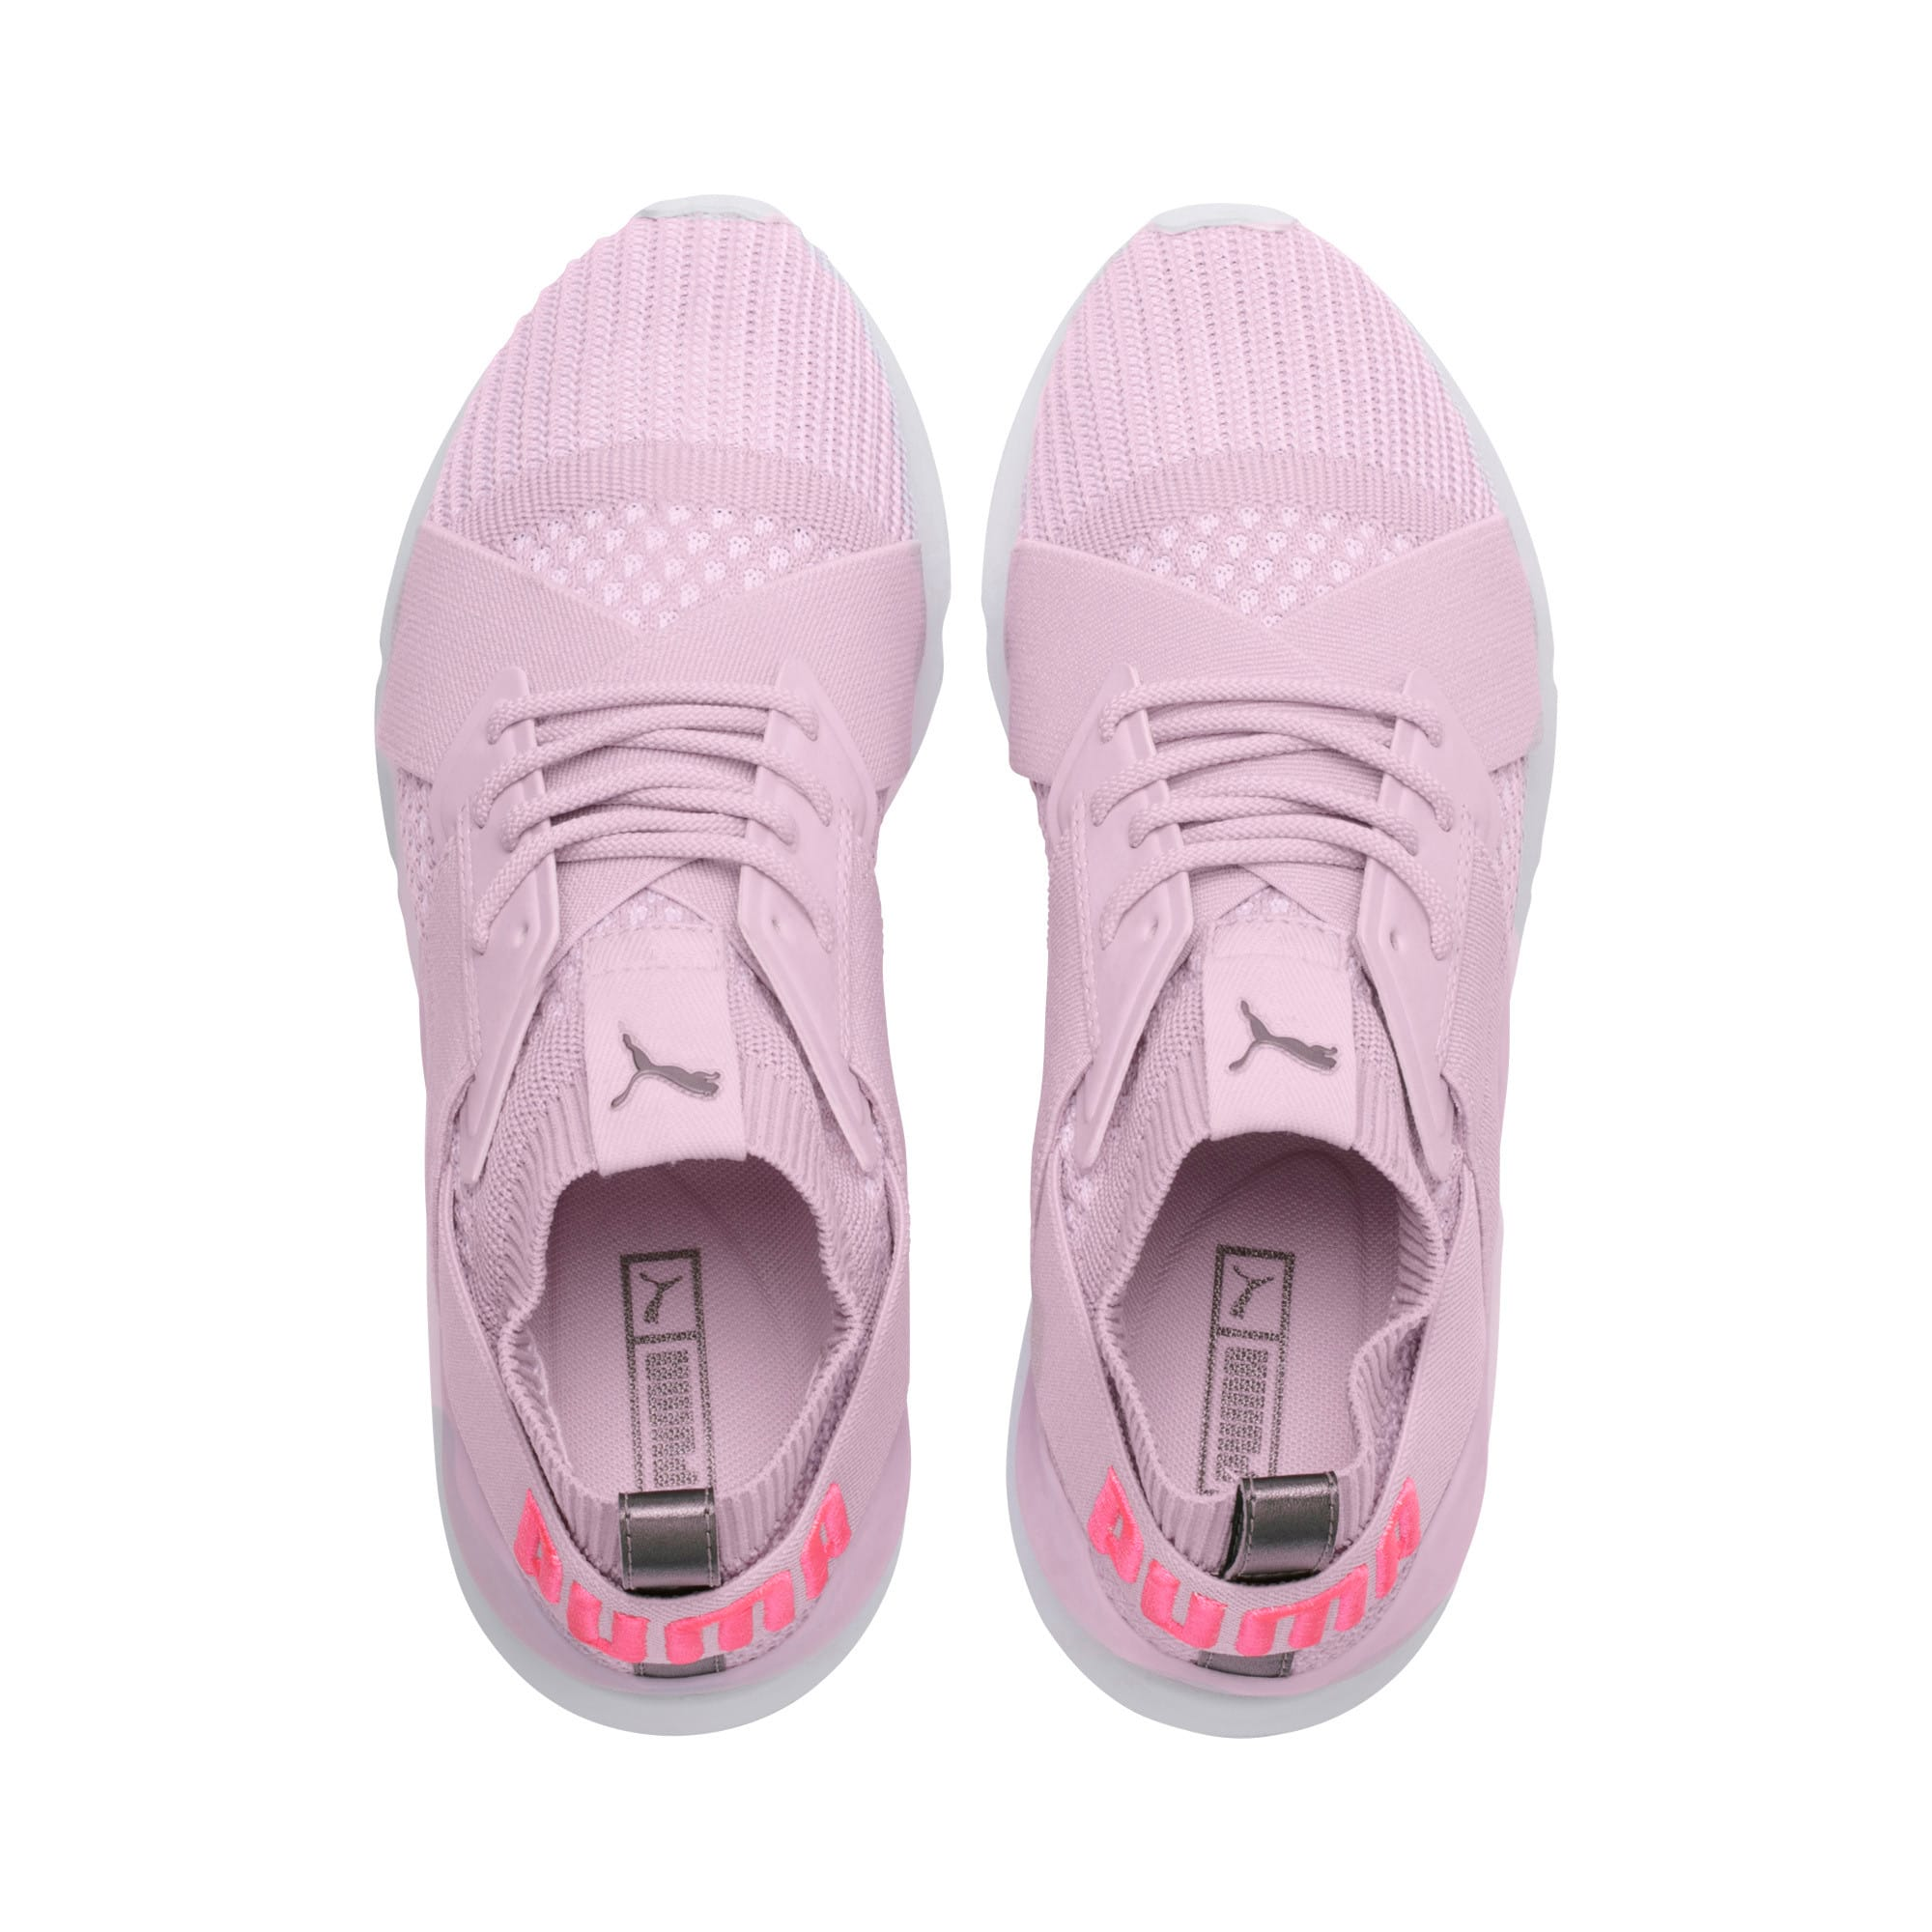 Thumbnail 6 of Muse evoKNIT Women's Trainers, Winsome Orchid, medium-IND